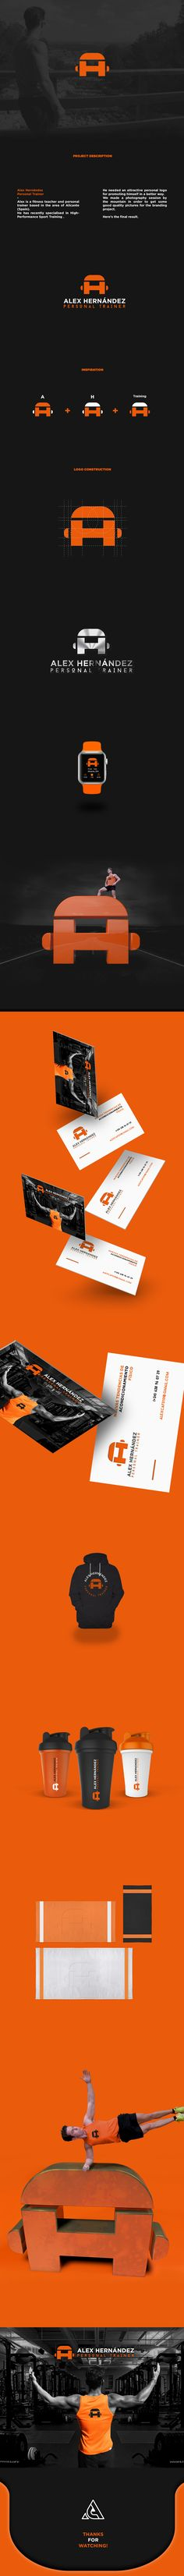 Alex Hernández - Personal Trainer // Branding on Behance